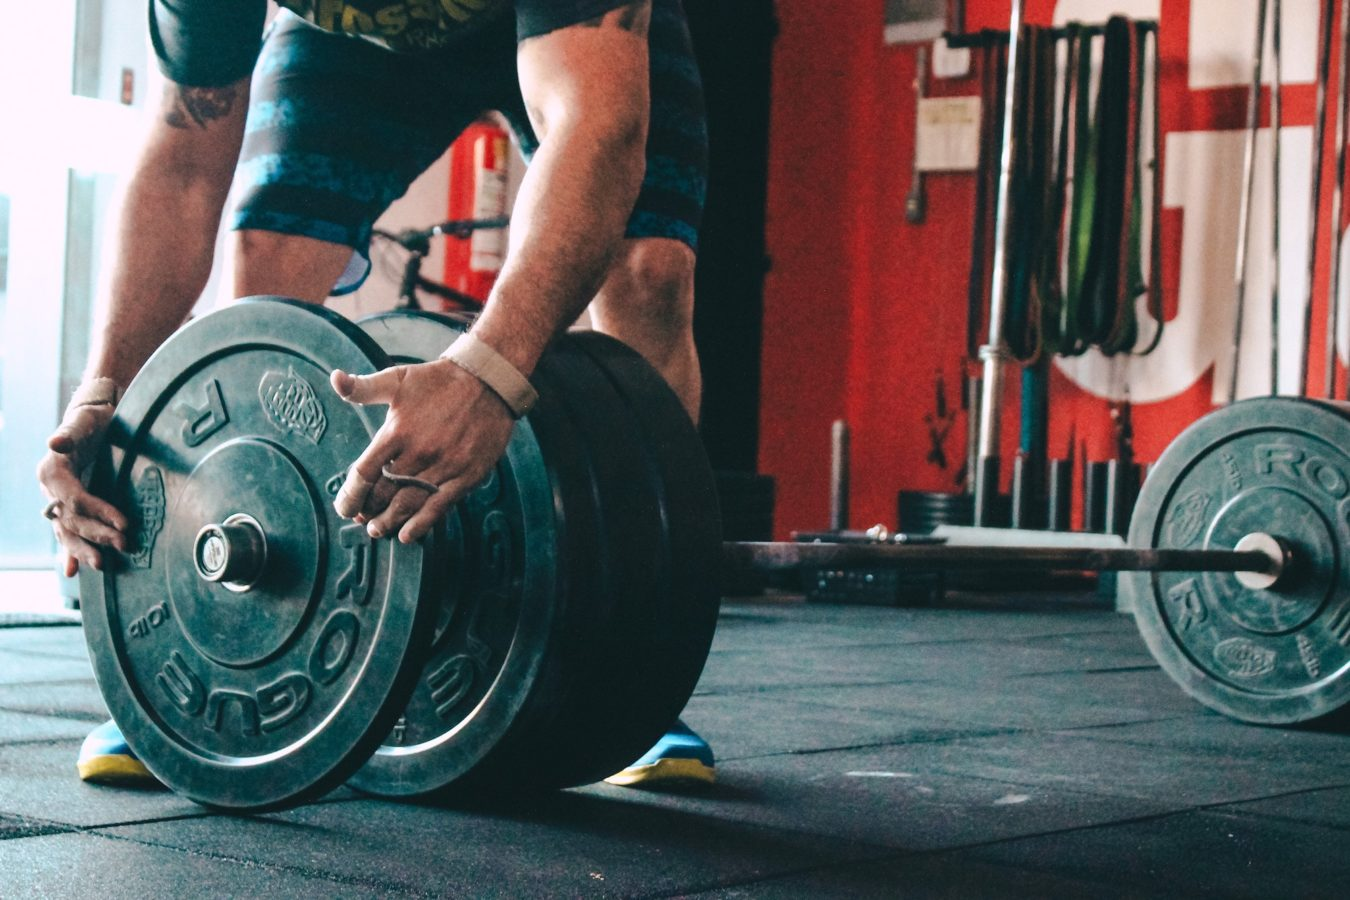 Returning to the gym after a long break? Here's how to prepare yourself